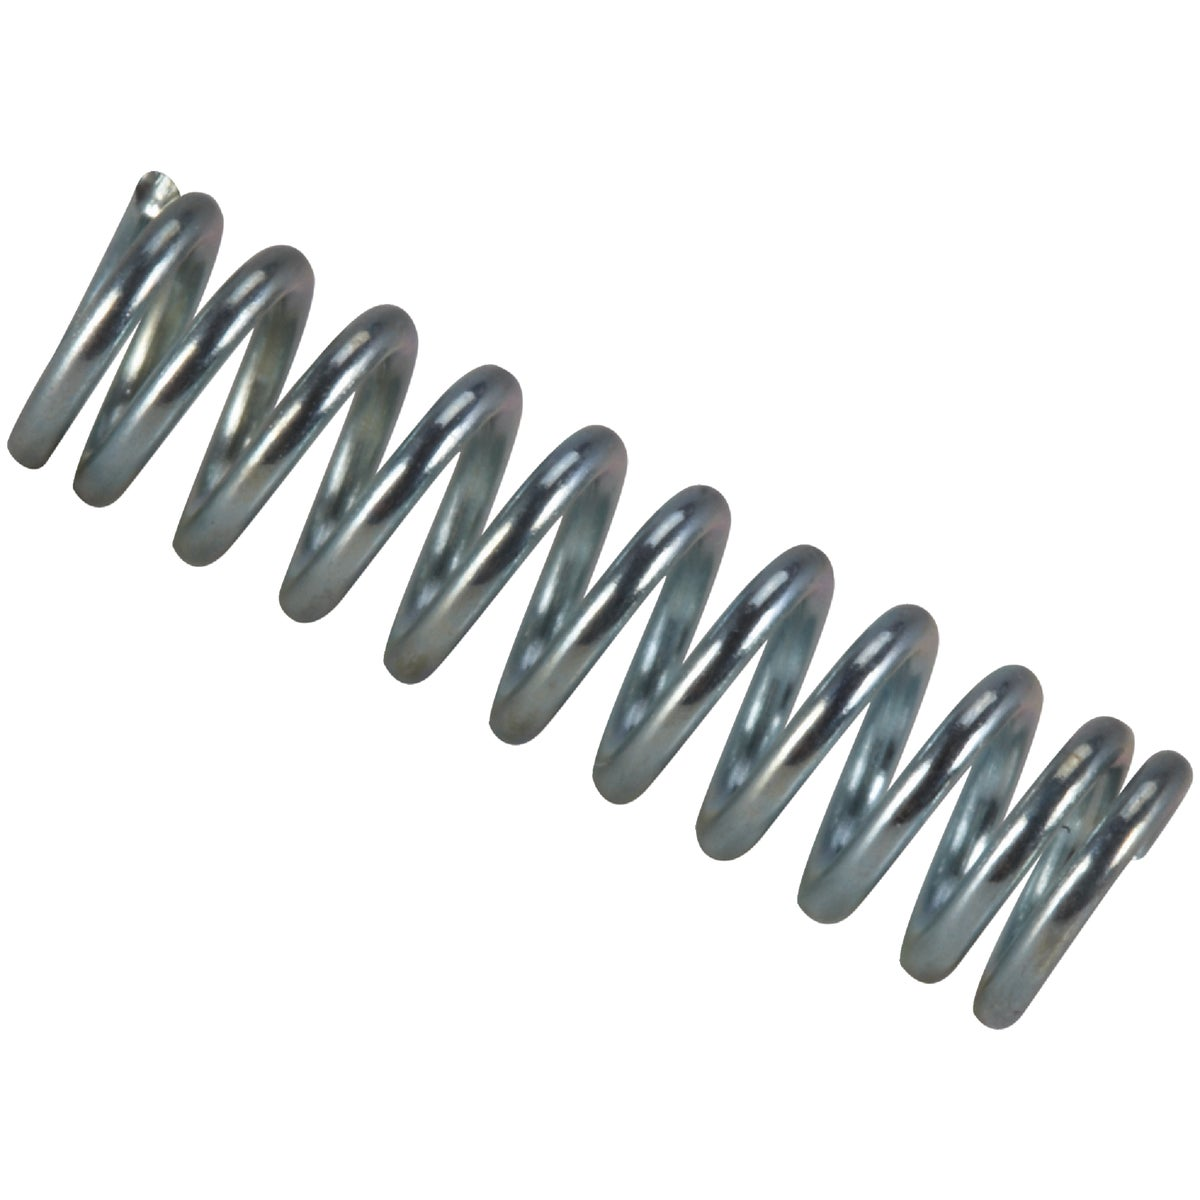 COMPRESSION SPRING - C-672 by Century Spring Corp